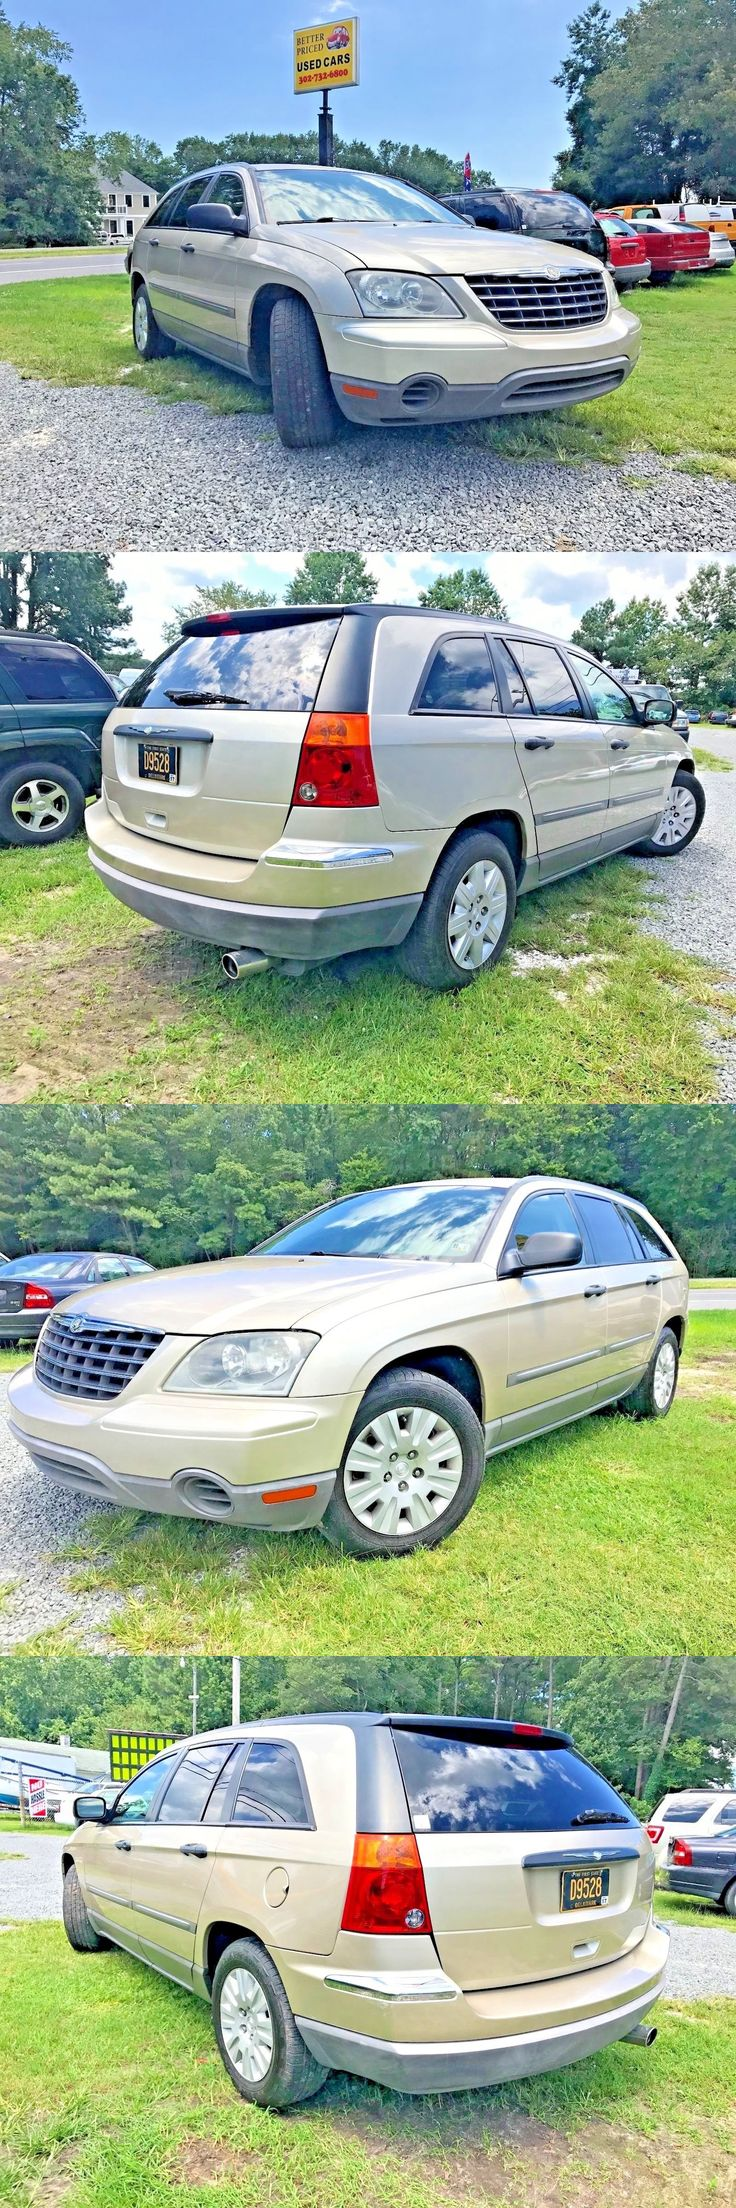 Suvs 2006 chrysler pacifica 4d suv 2006 chrysler pacifica super clean roomy 3 5l family